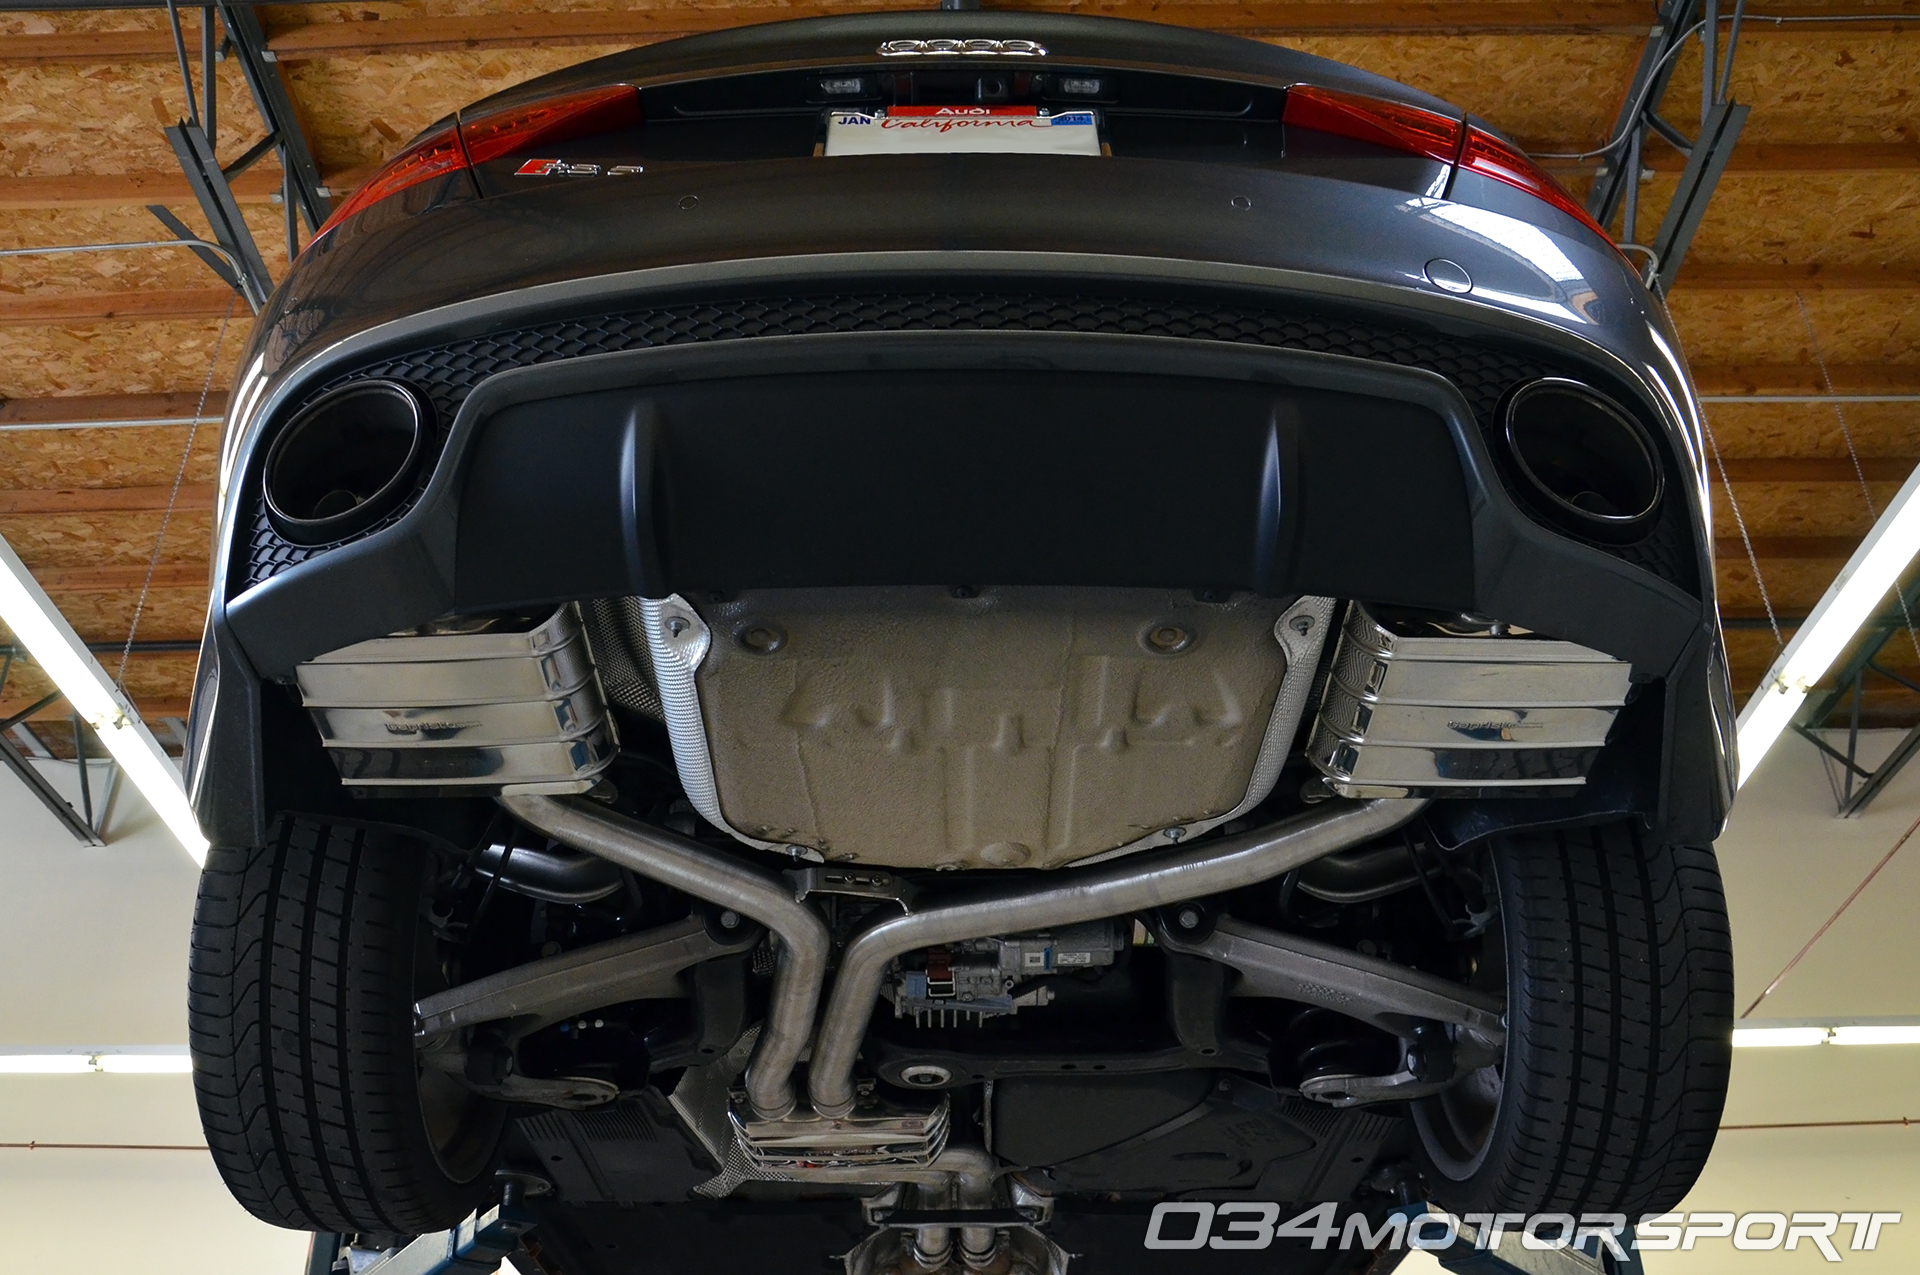 Capristo B8 5 Audi Rs5 Exhaust Installation At 034motorsport